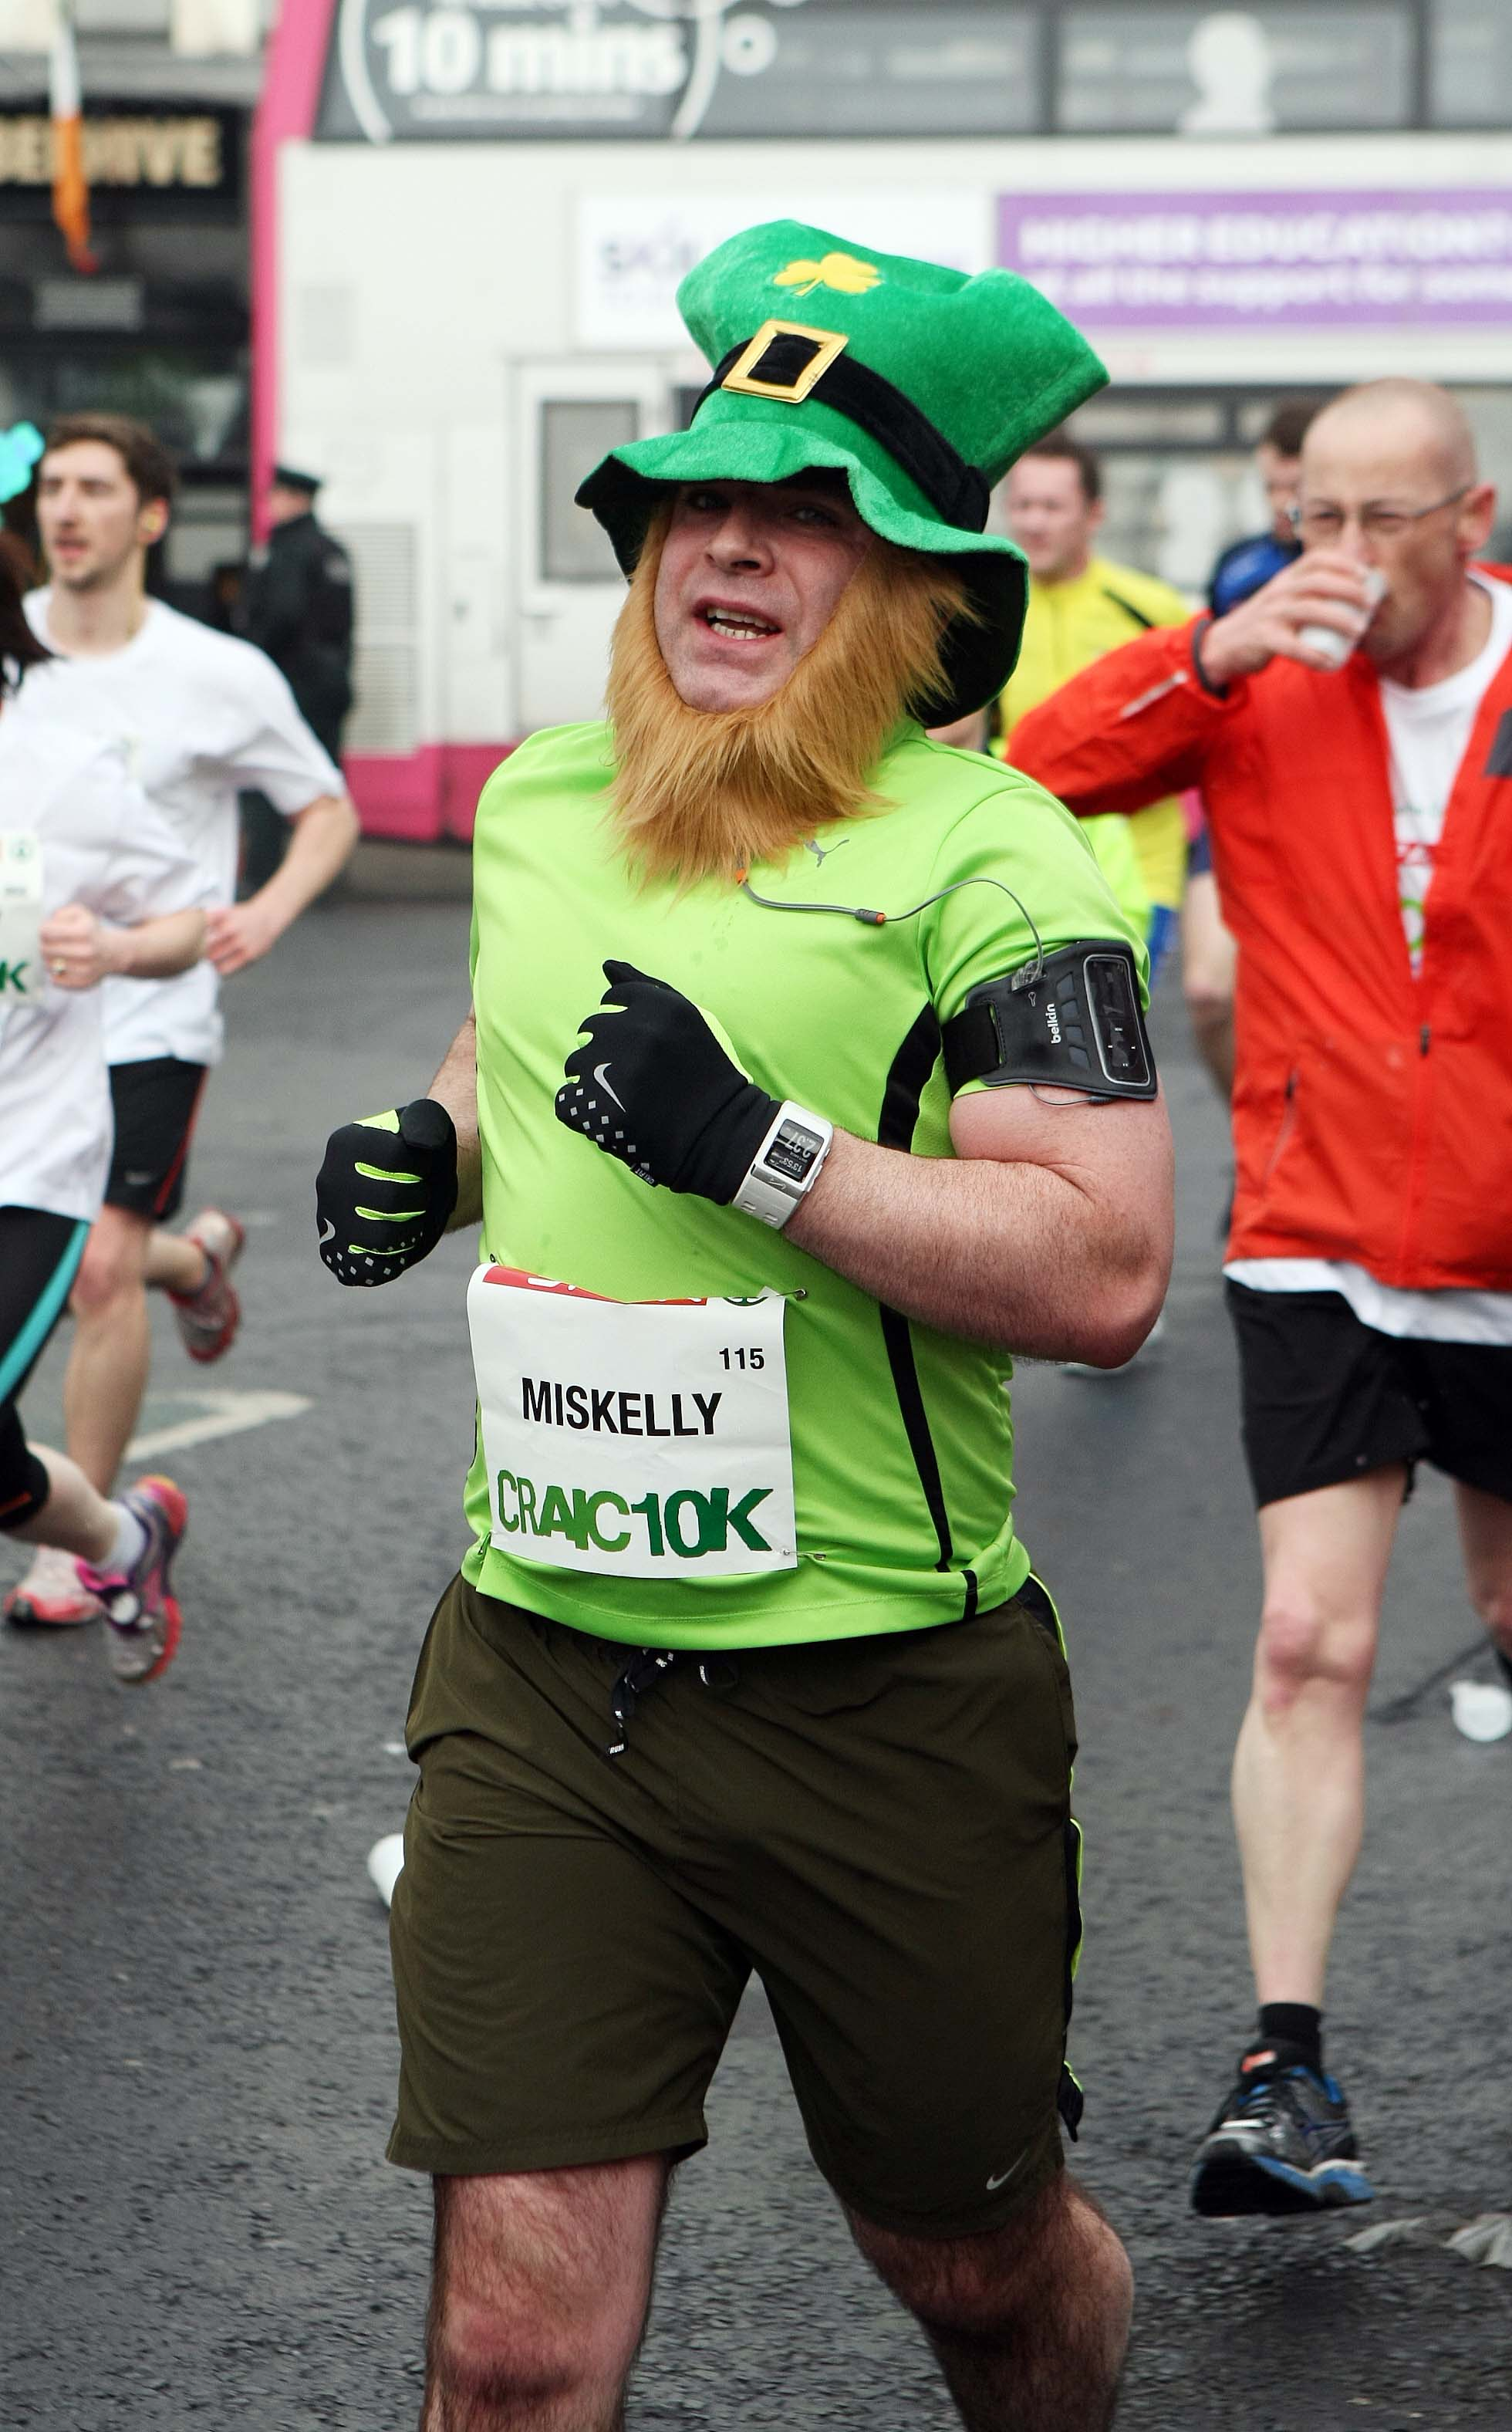 Tuesday 17-3-2015St Patrick's DaySPAR Craic 10k BelfastLeprechauns on the runSparCraic10K170315FP019